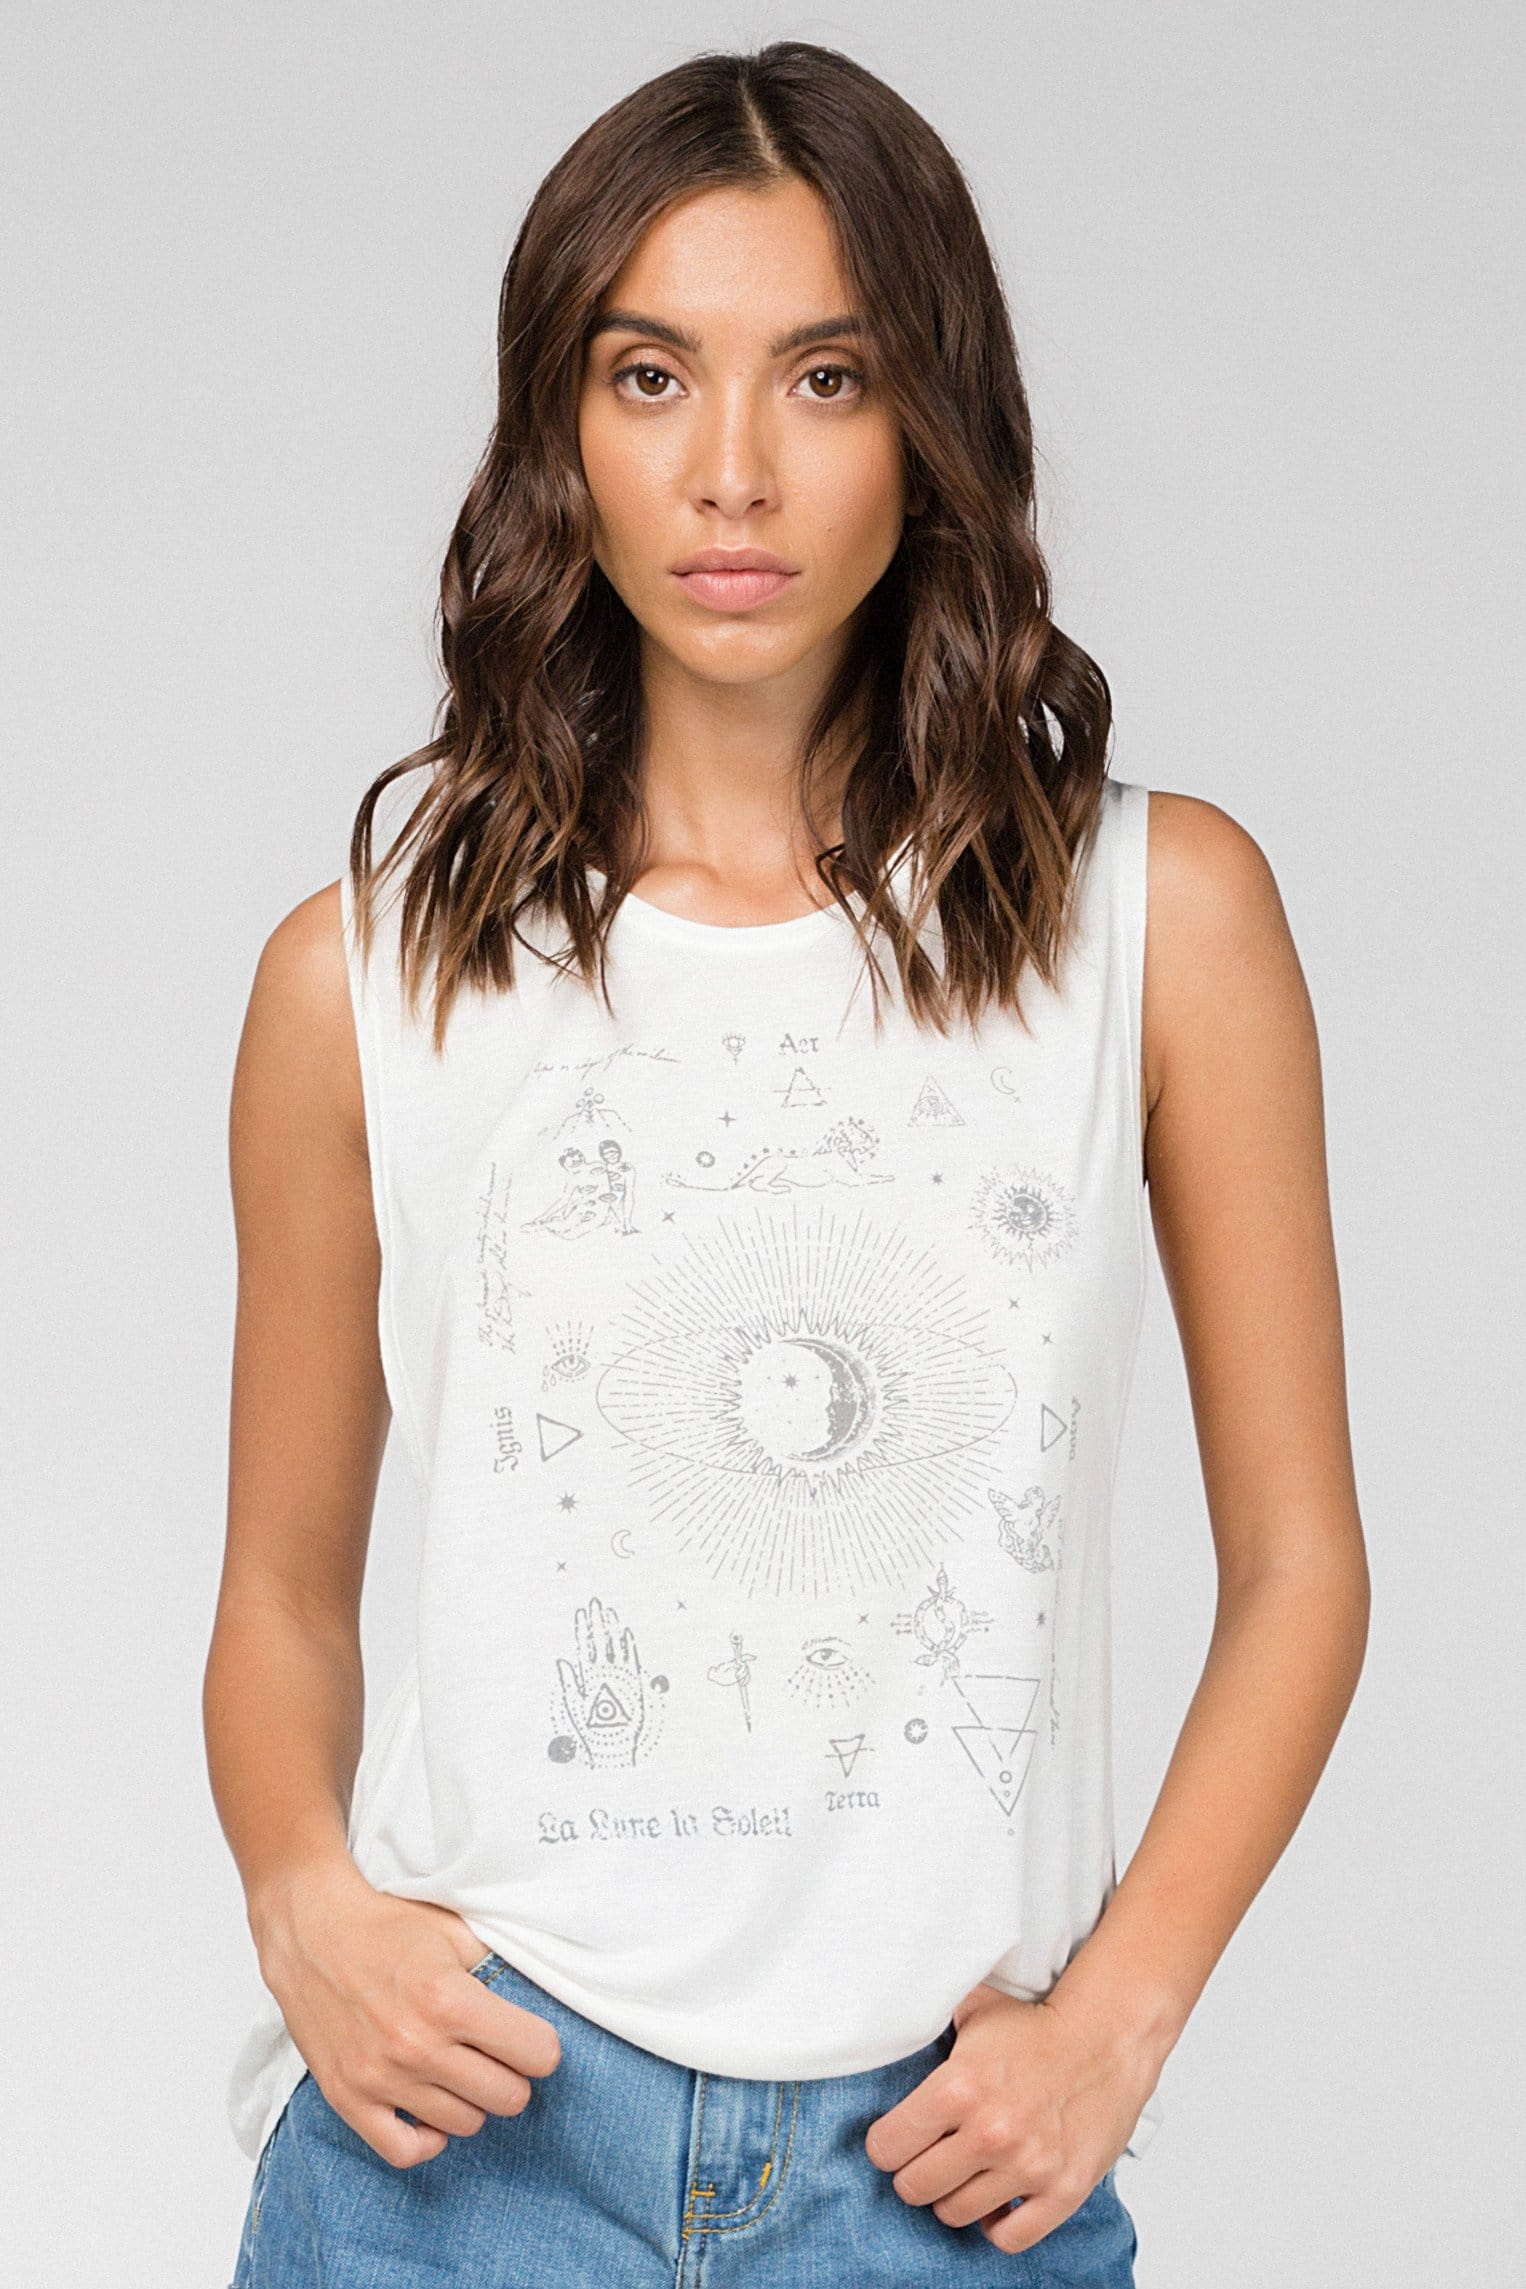 Cetera Top - Woman Singlet - CITIZENS